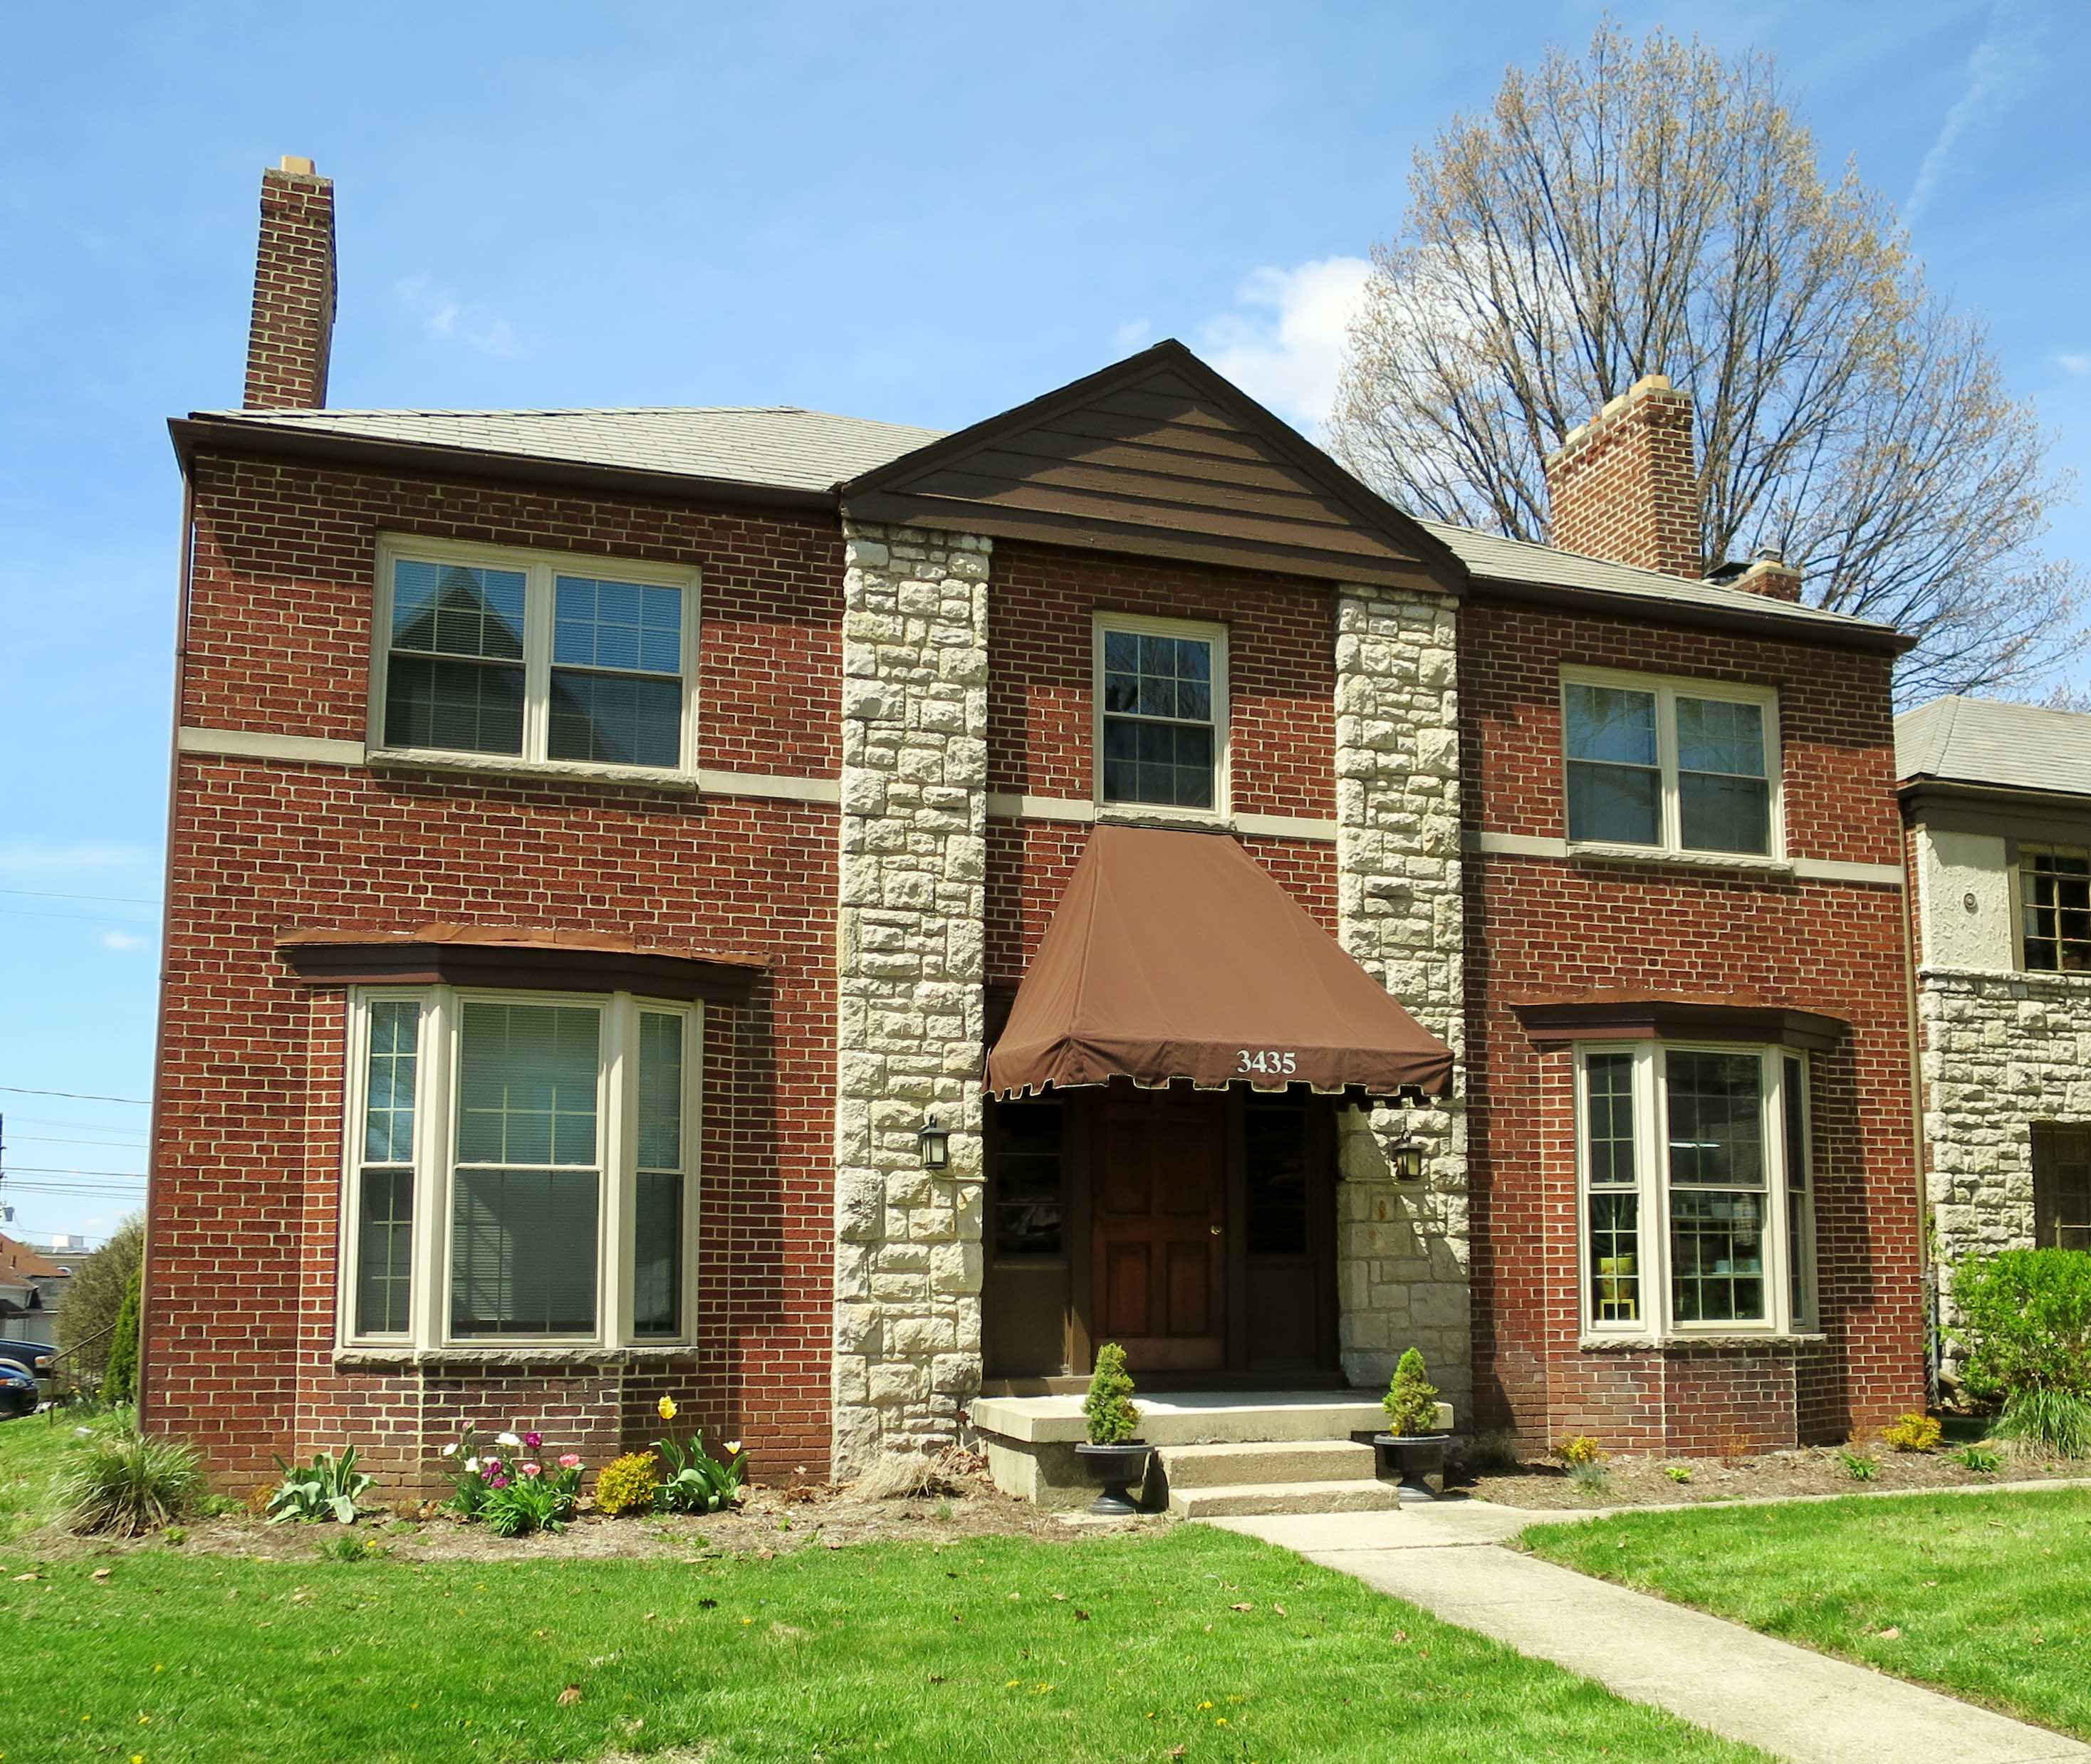 Clintonville Apartments: Apartments For Rent In Clintonville